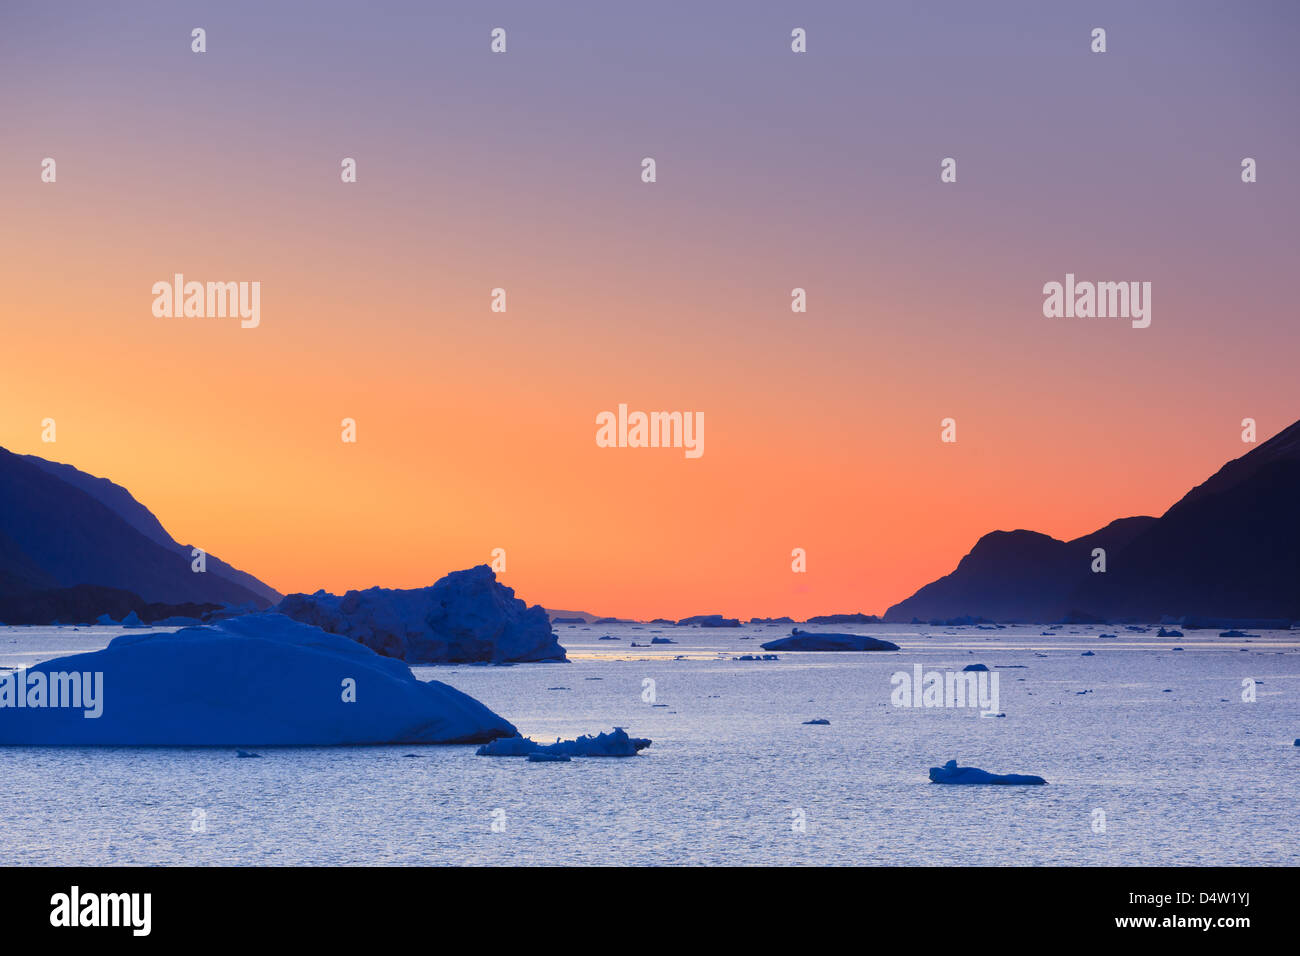 Icebergs at sunrise in the Rodefjord, Scoresby sund, Greenland - Stock Image